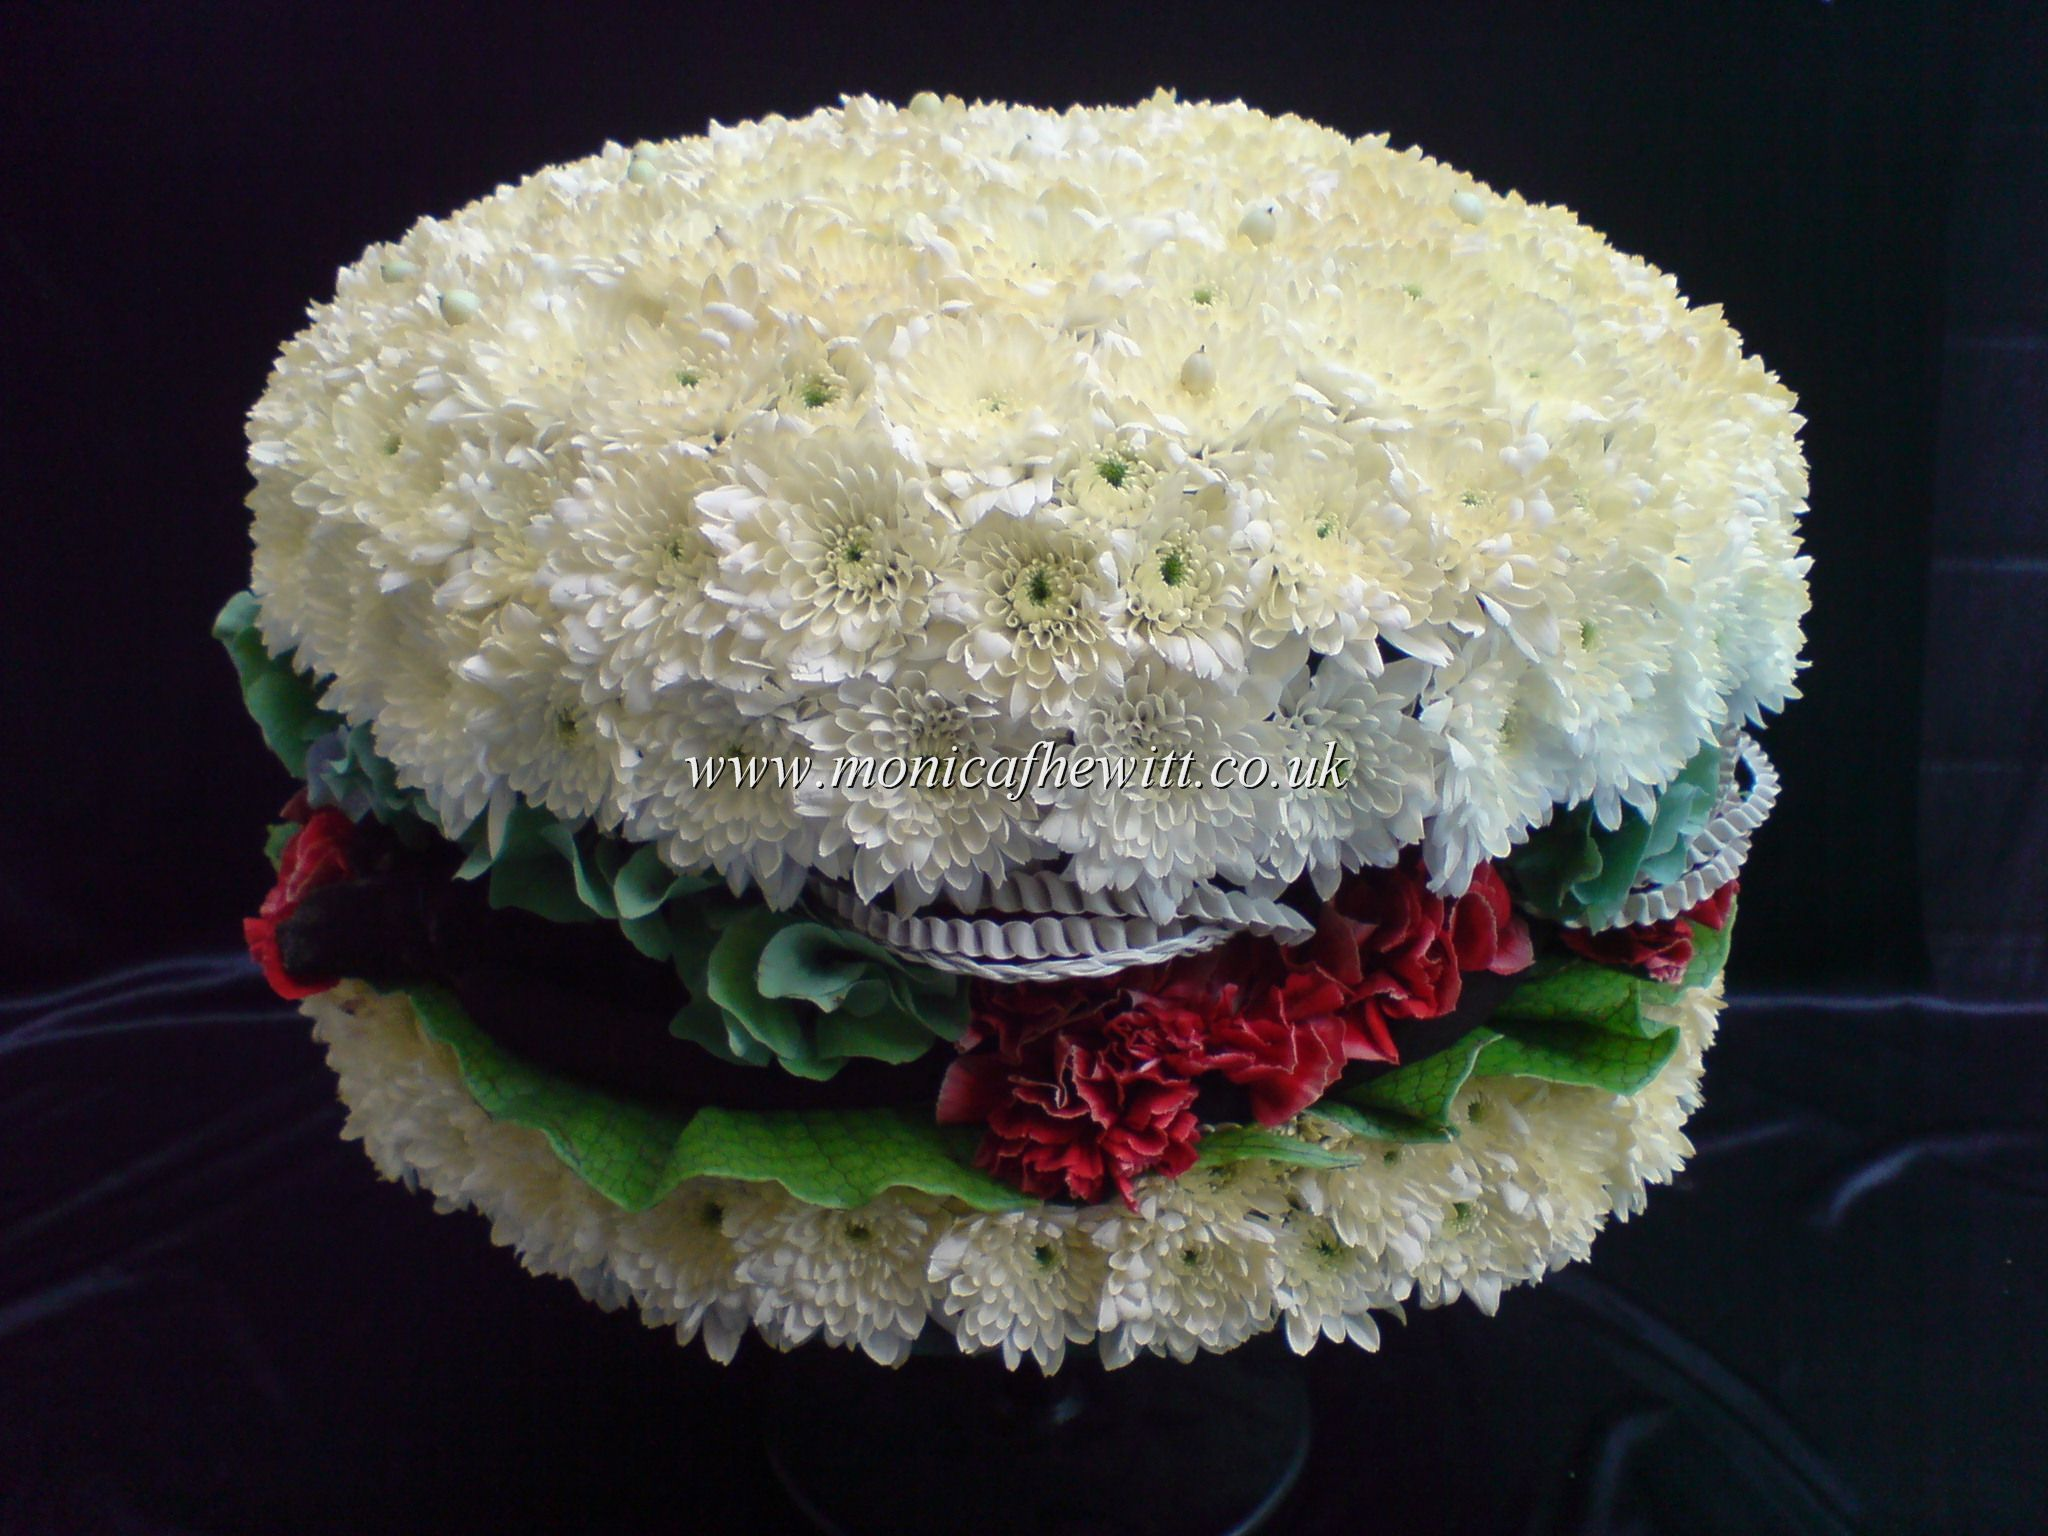 Pleasant Burger Funeral Flowers Monica F Hewitt Florist Sheffield With Birthday Cards Printable Opercafe Filternl